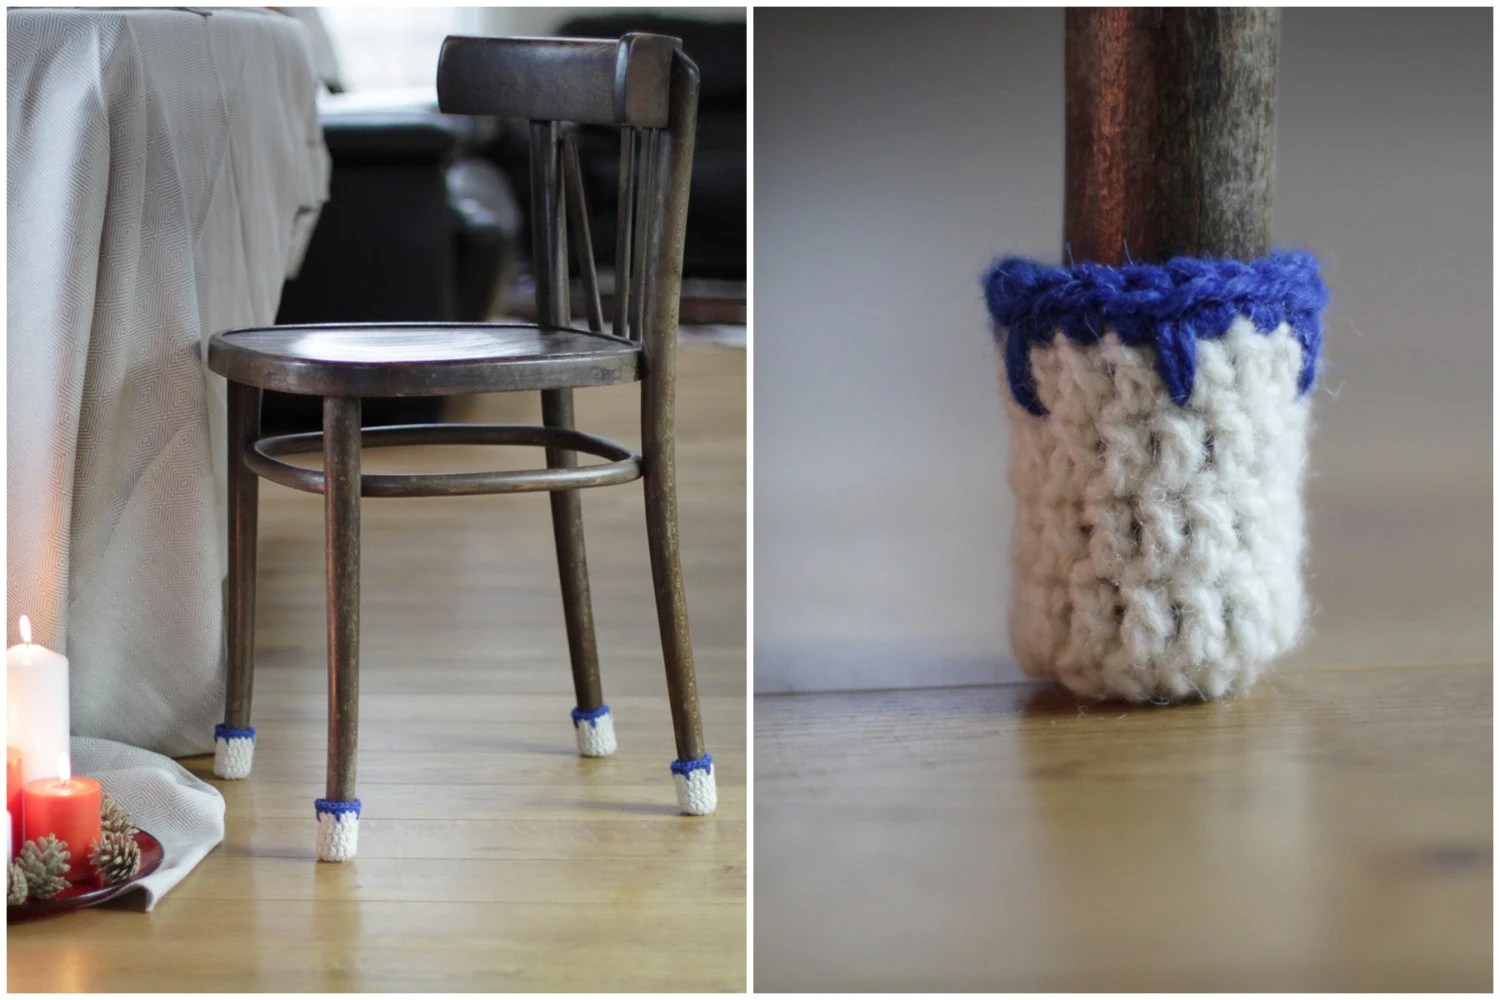 Floor Protectors For Chairs Floor Protector 8 Wool Chair Protectors Chair Leg Socks